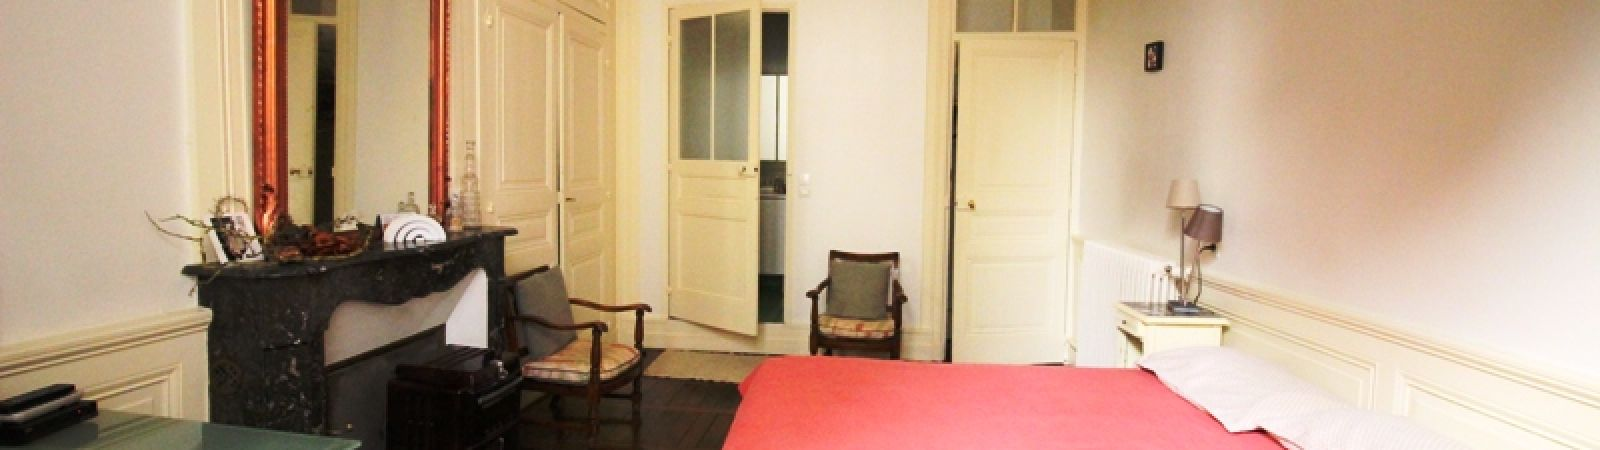 photo 5: Ensemble de 6 appartements